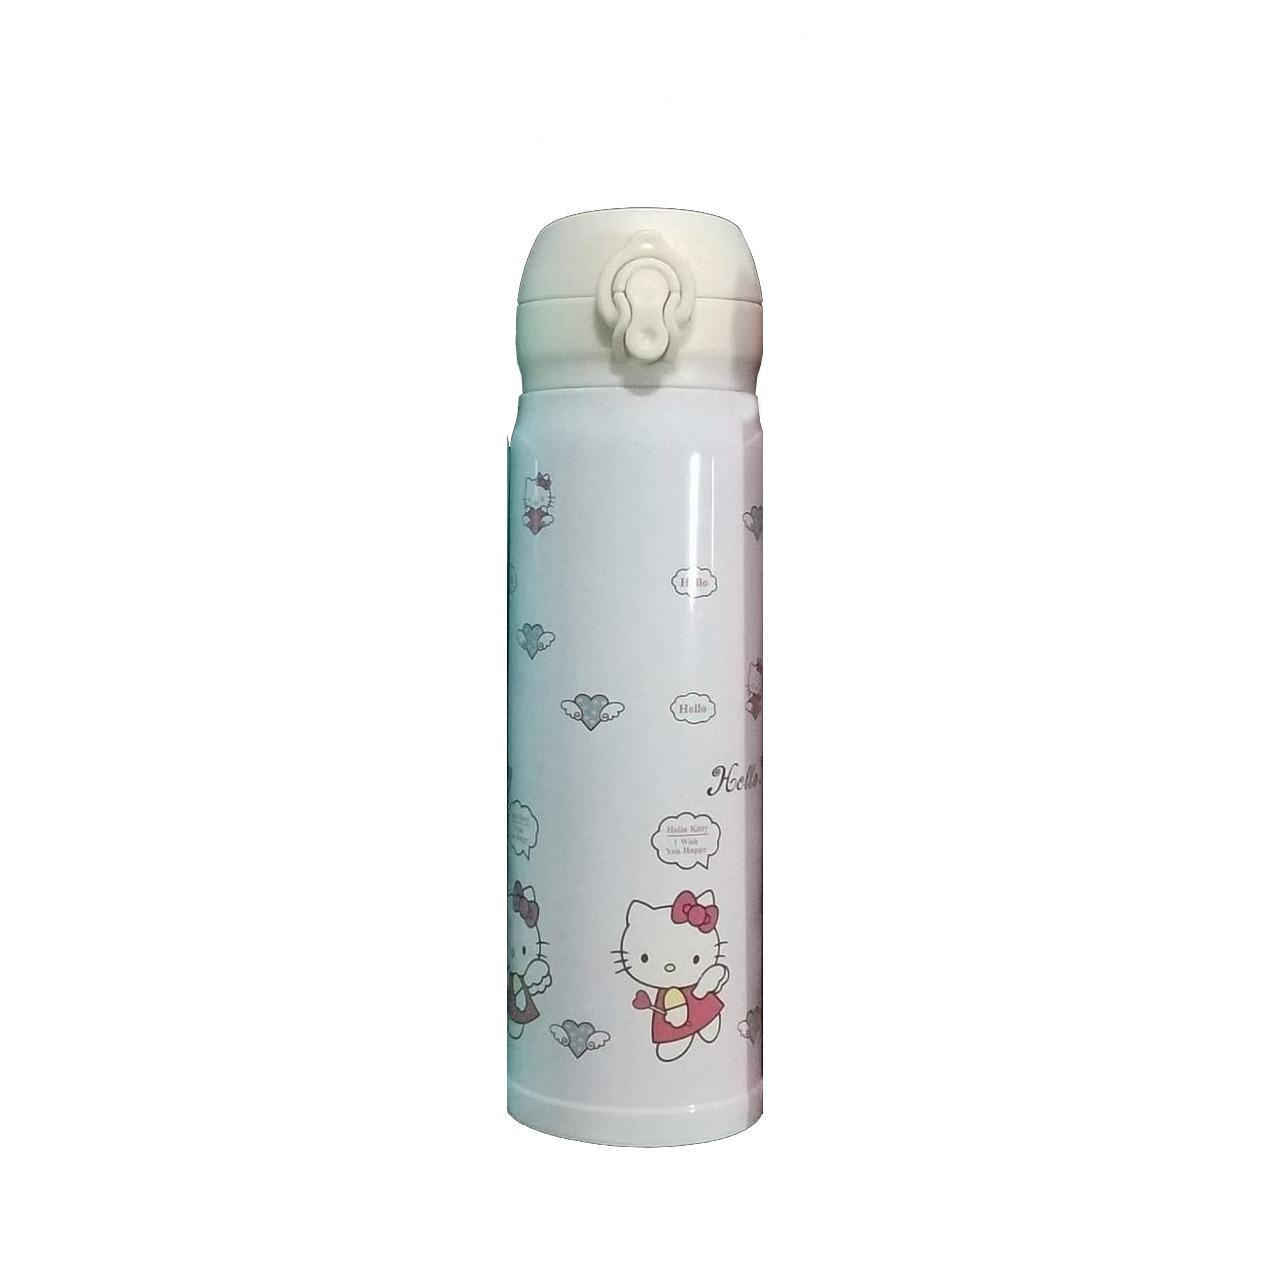 Gambar Produk Rinci Termos Air Panas Stainless Steel Vacuum Flask Karakter 500 ML New Generation Terkini